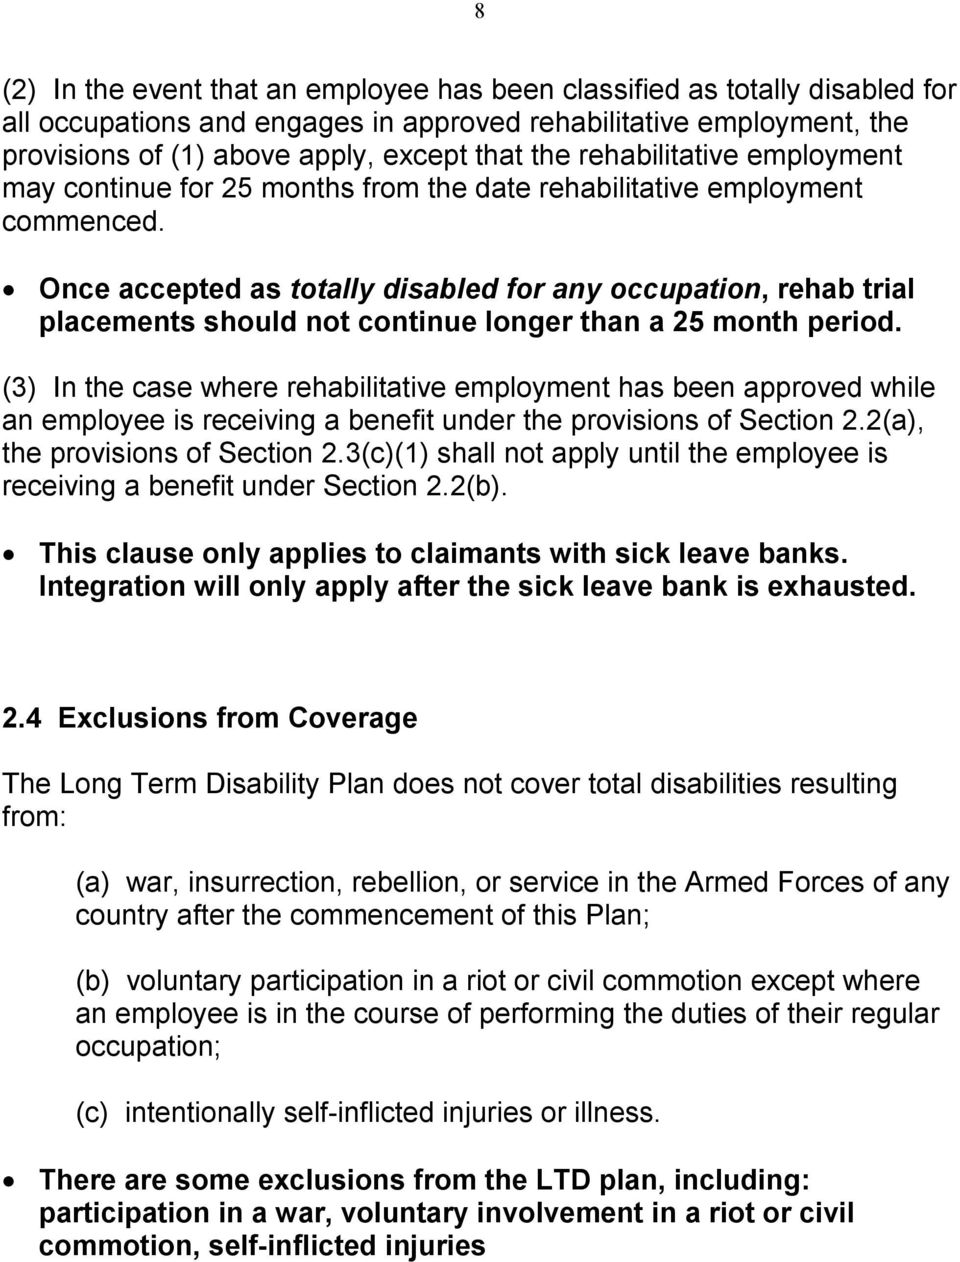 Once accepted as totally disabled for any occupation, rehab trial placements should not continue longer than a 25 month period.